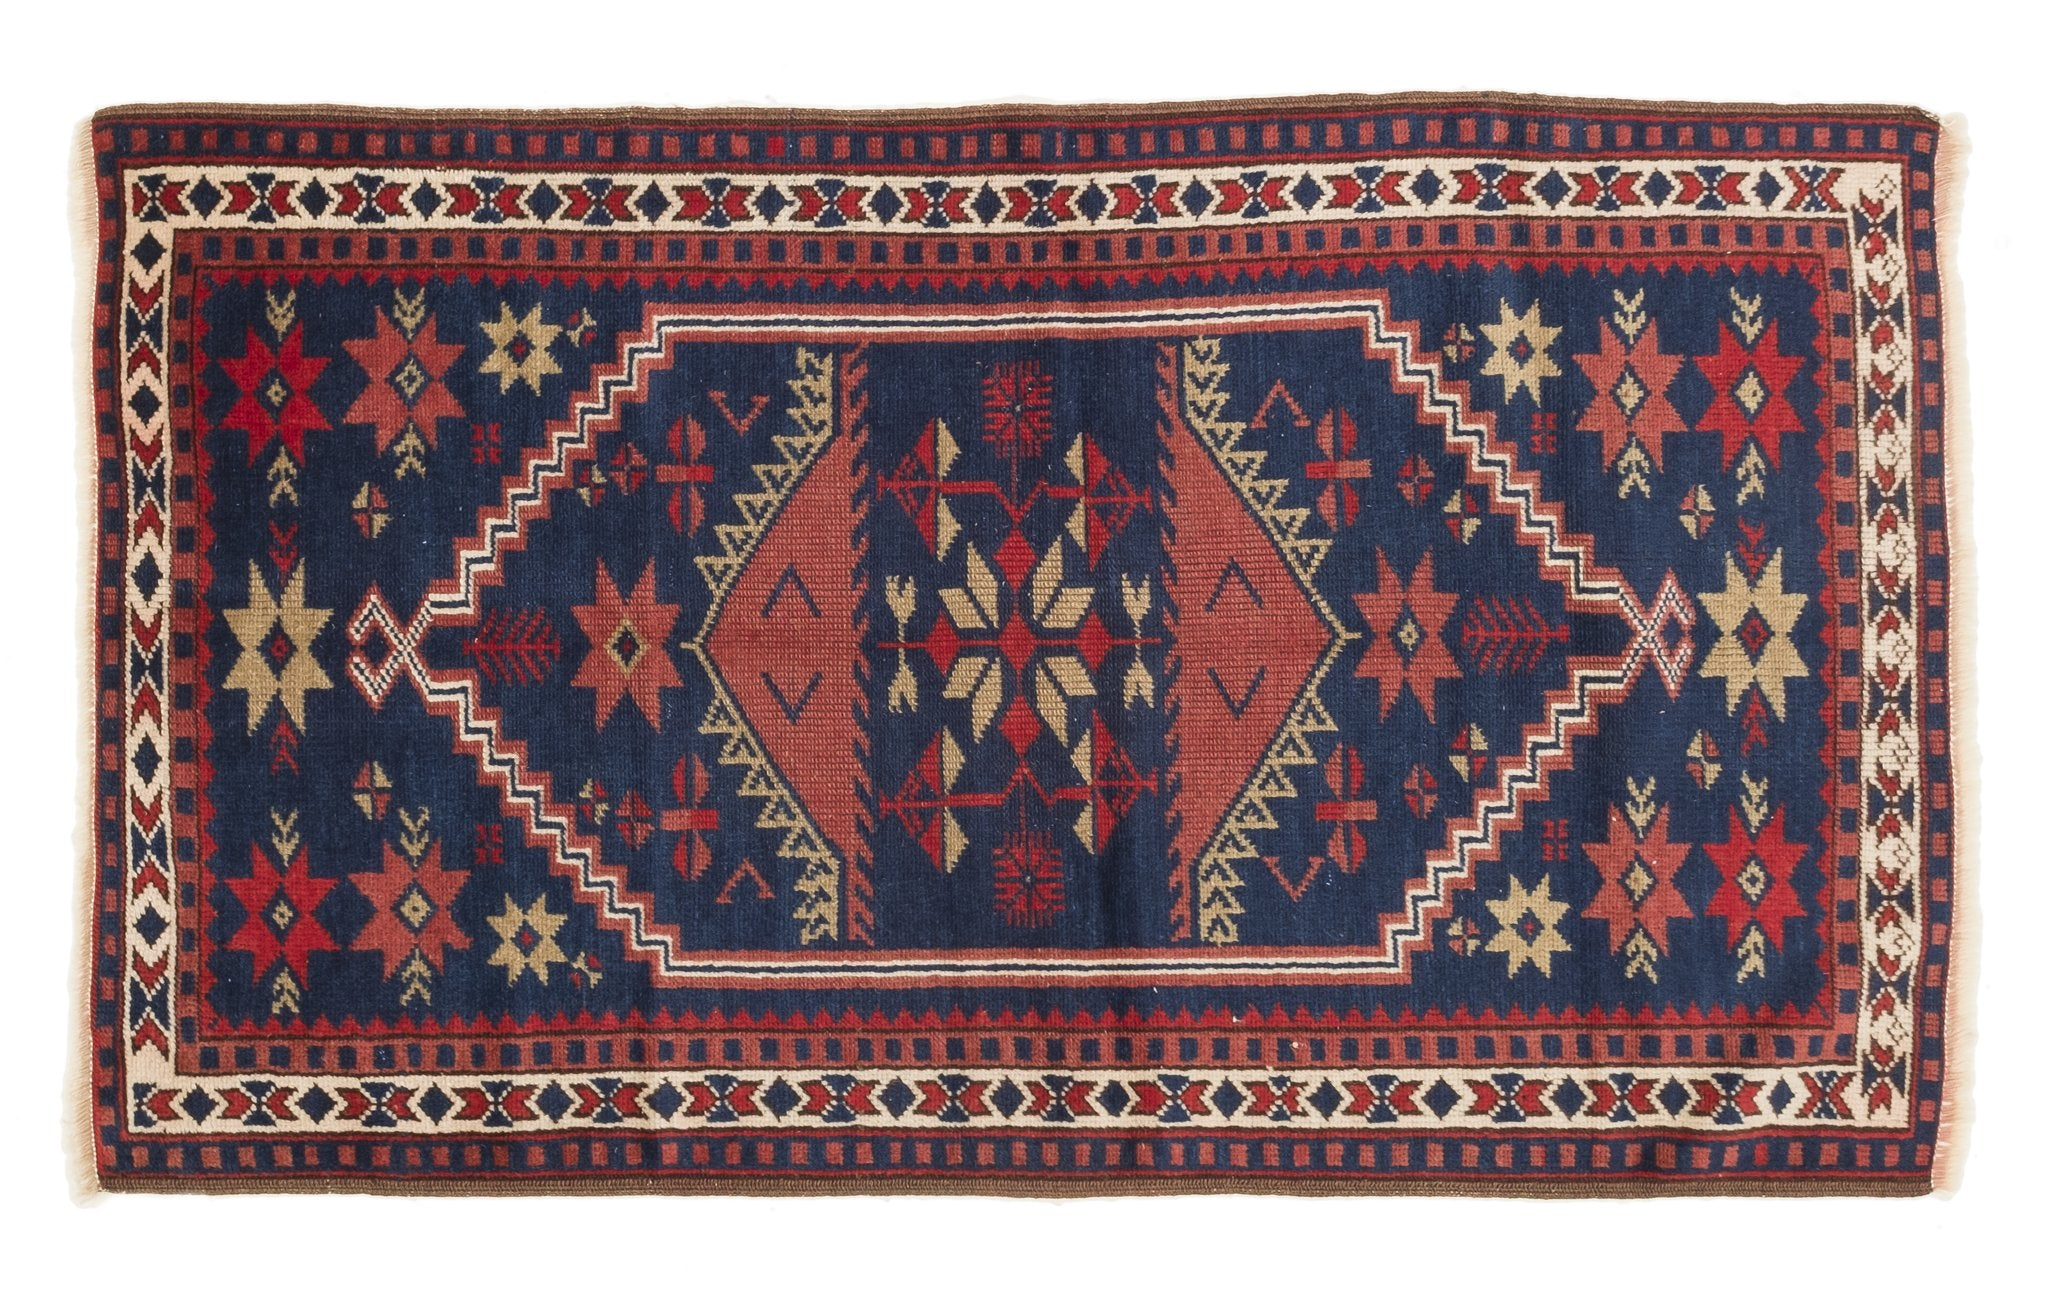 Vintage Turkish Rug Laimis